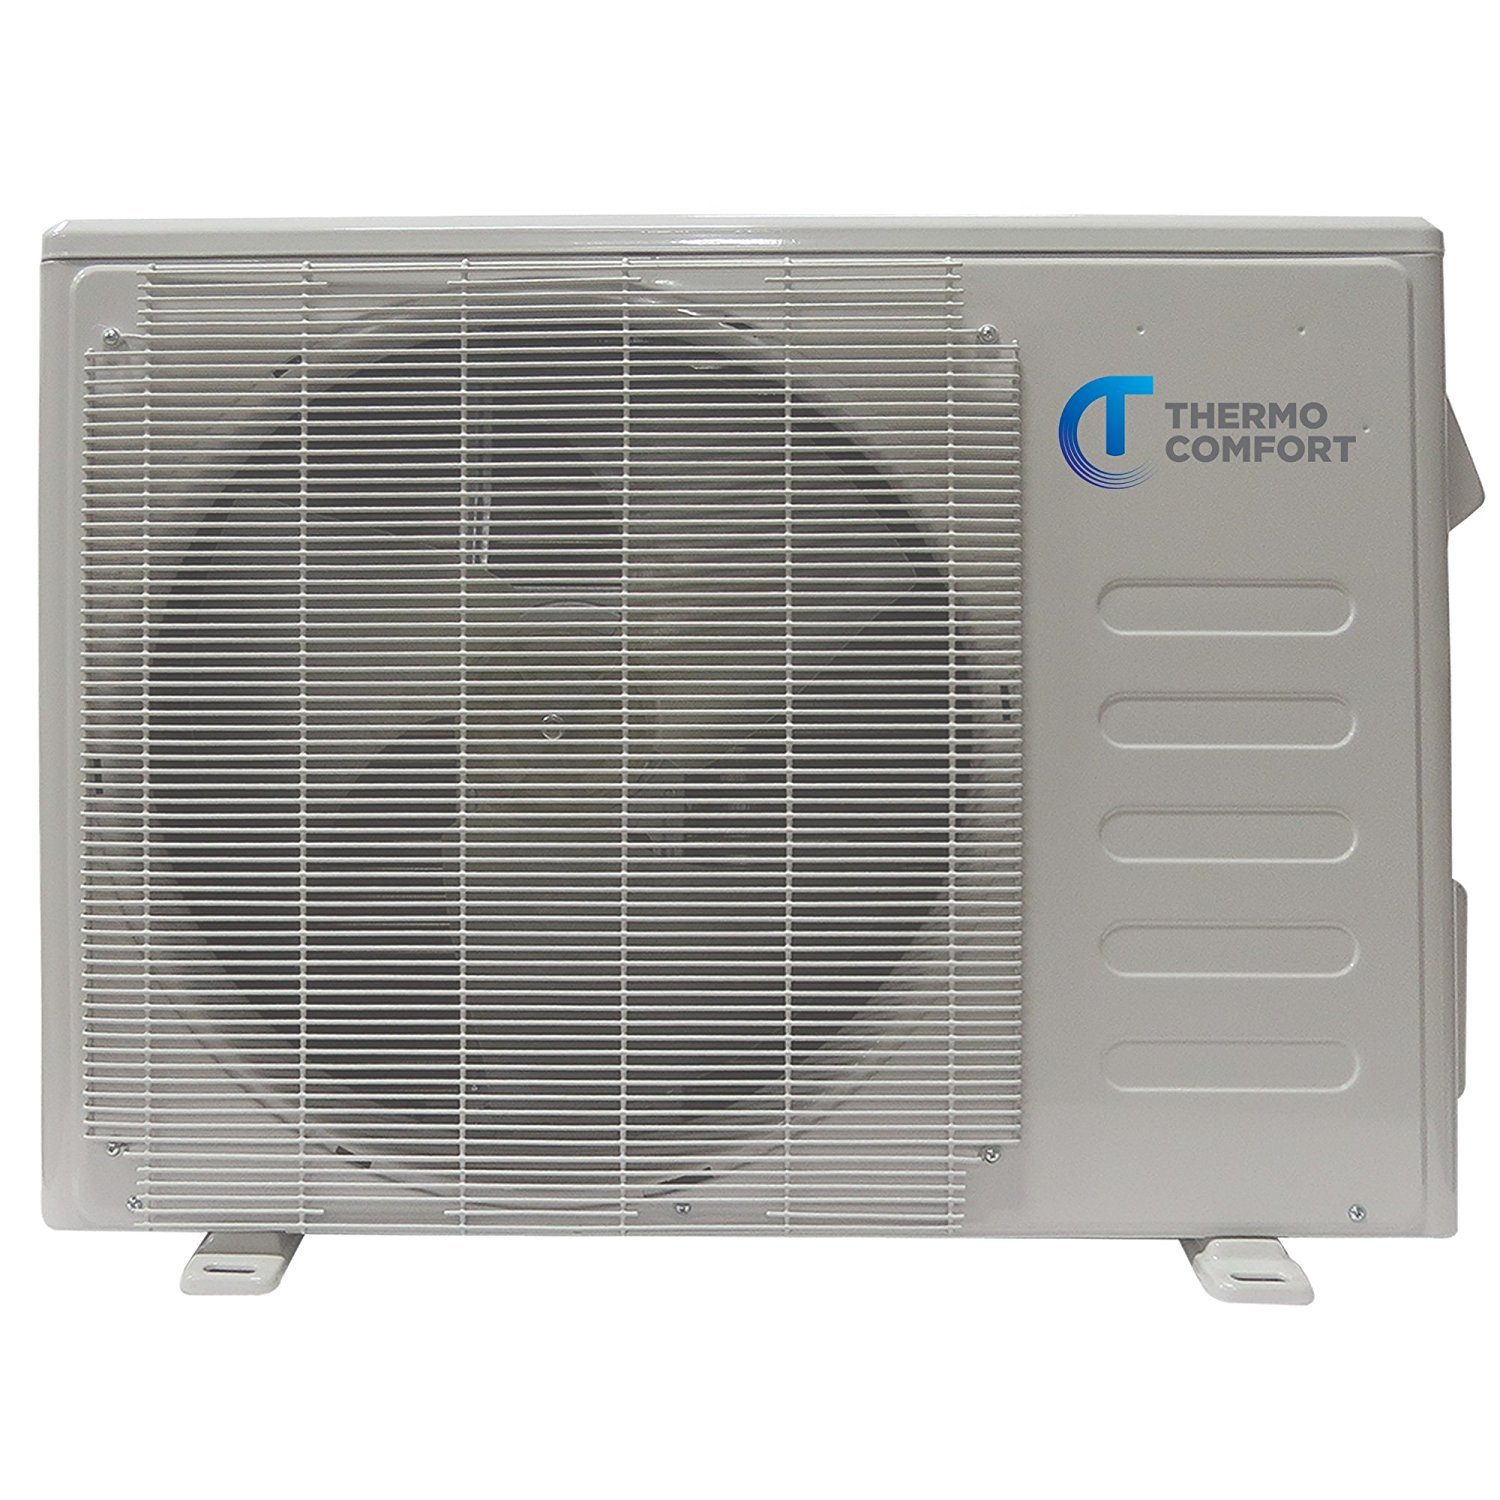 Amazon.com: Thermo Comfort Mini Split Air Conditioner - 18000 BTU - 1.5 Ton - 21.5 SEER Inverter with Android WiFi - Ductless Heat Pump - AC Unit Split ...